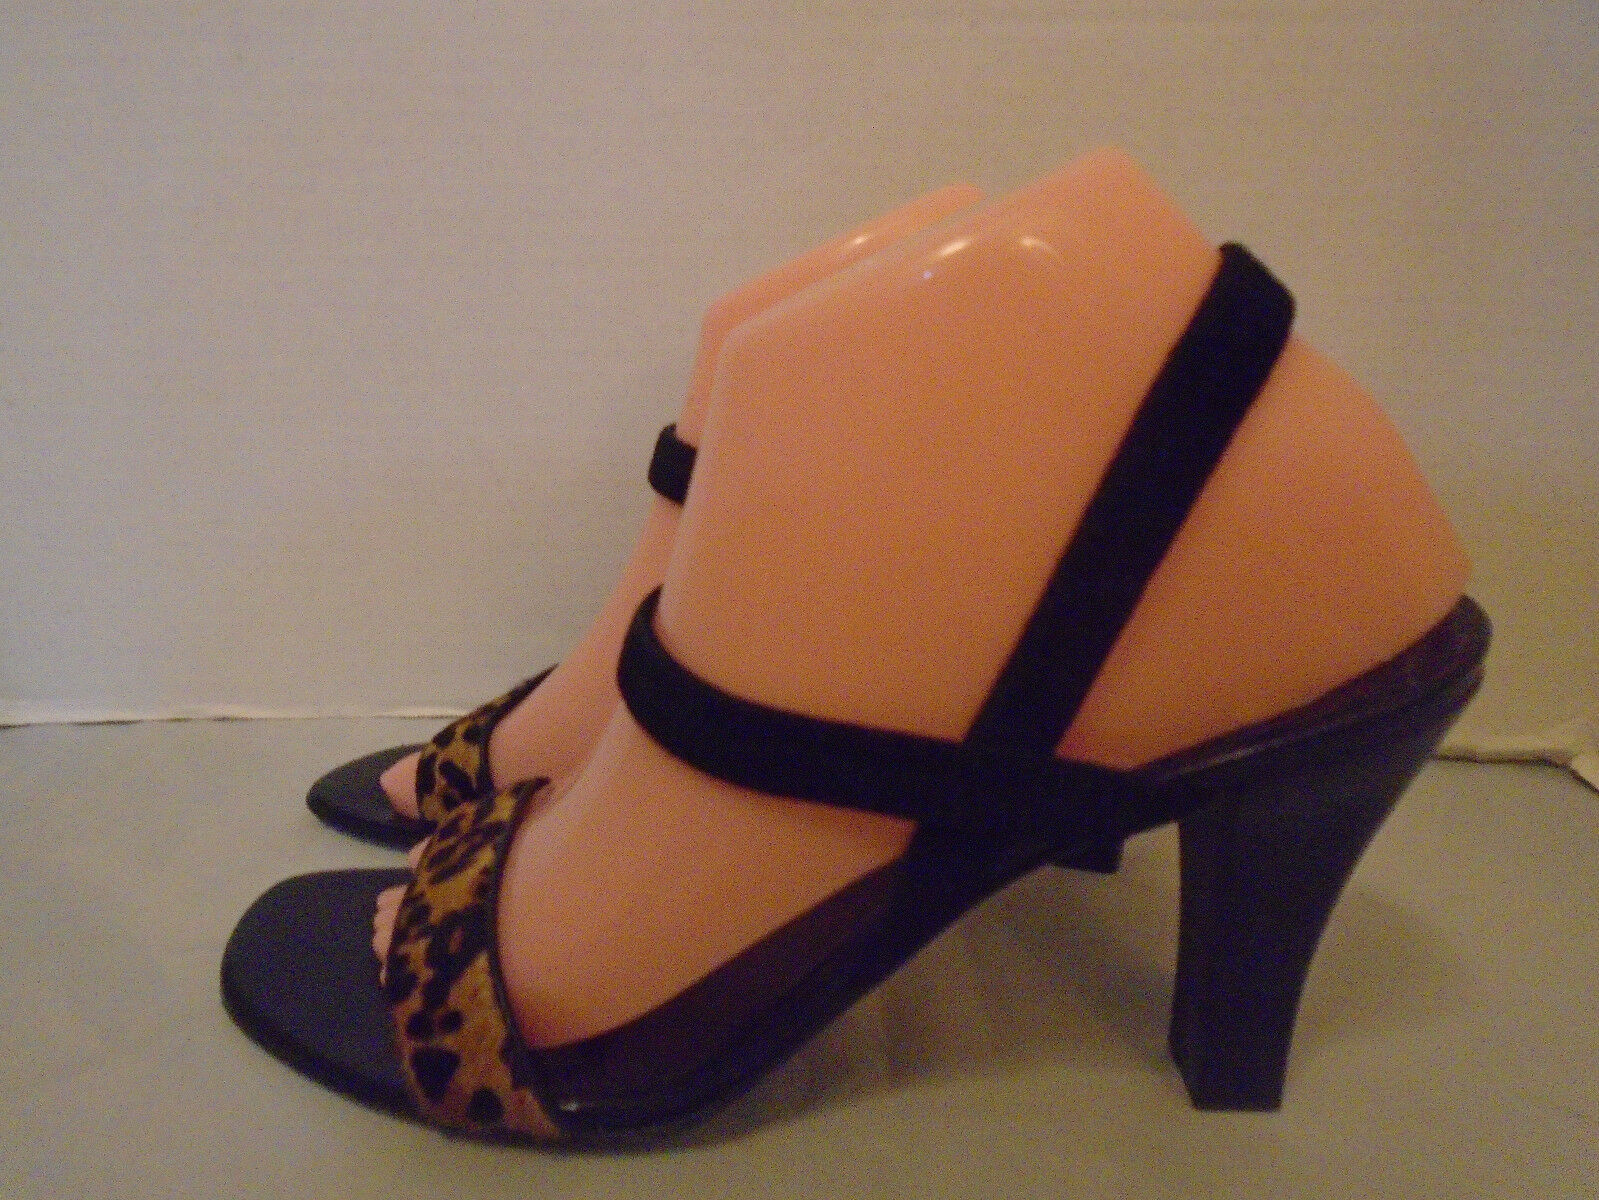 ARTURO CHIANG  BLACK ANIMAL PRINT SUED LEATHER WOMANS  STRAPPY HEELS SIZE 8.5M